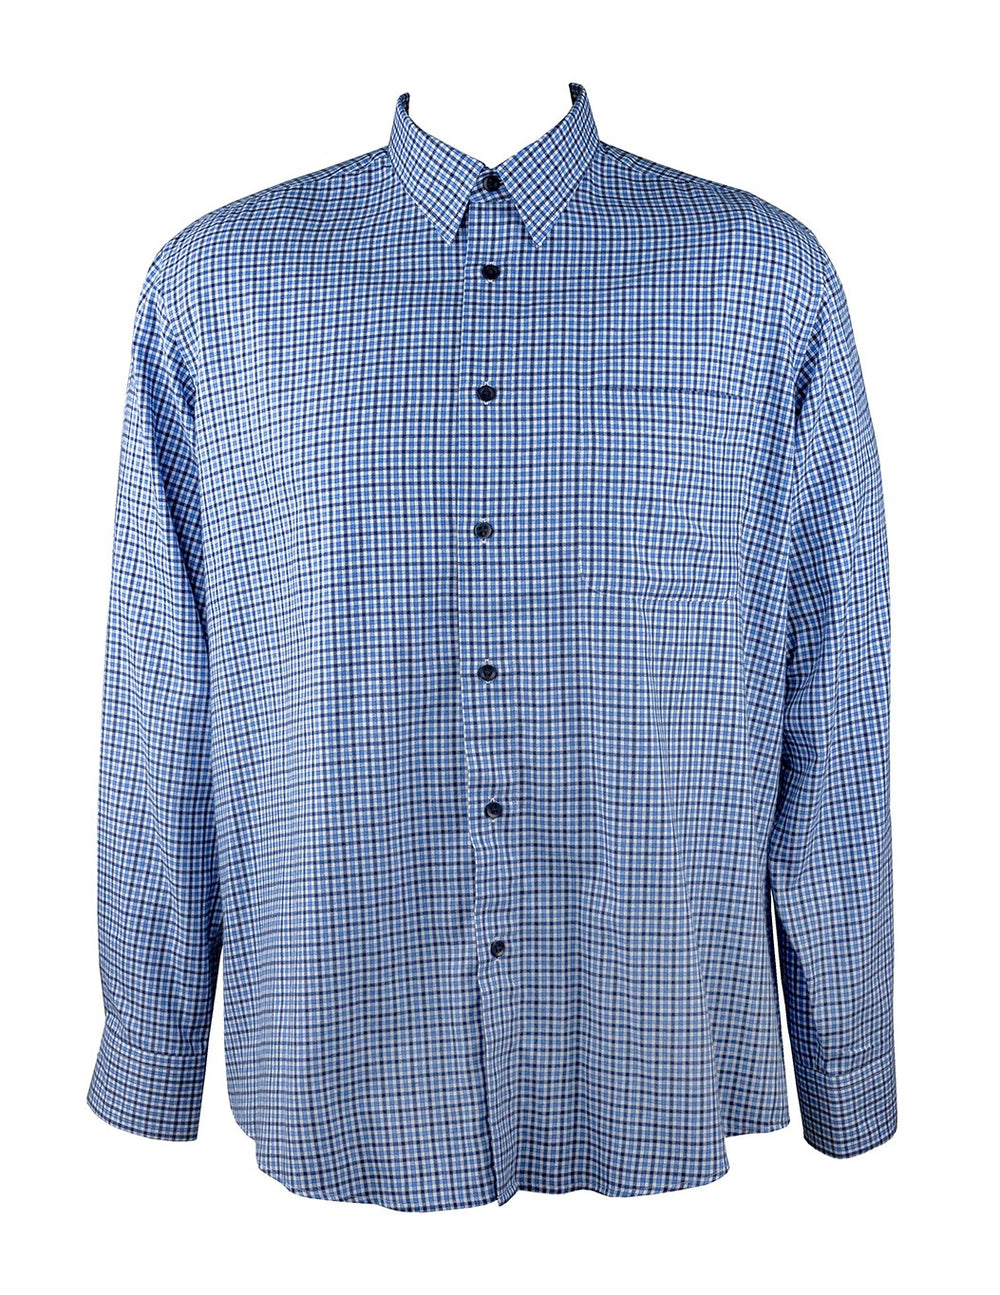 Country Look Blue/Navy Check LS Shirt